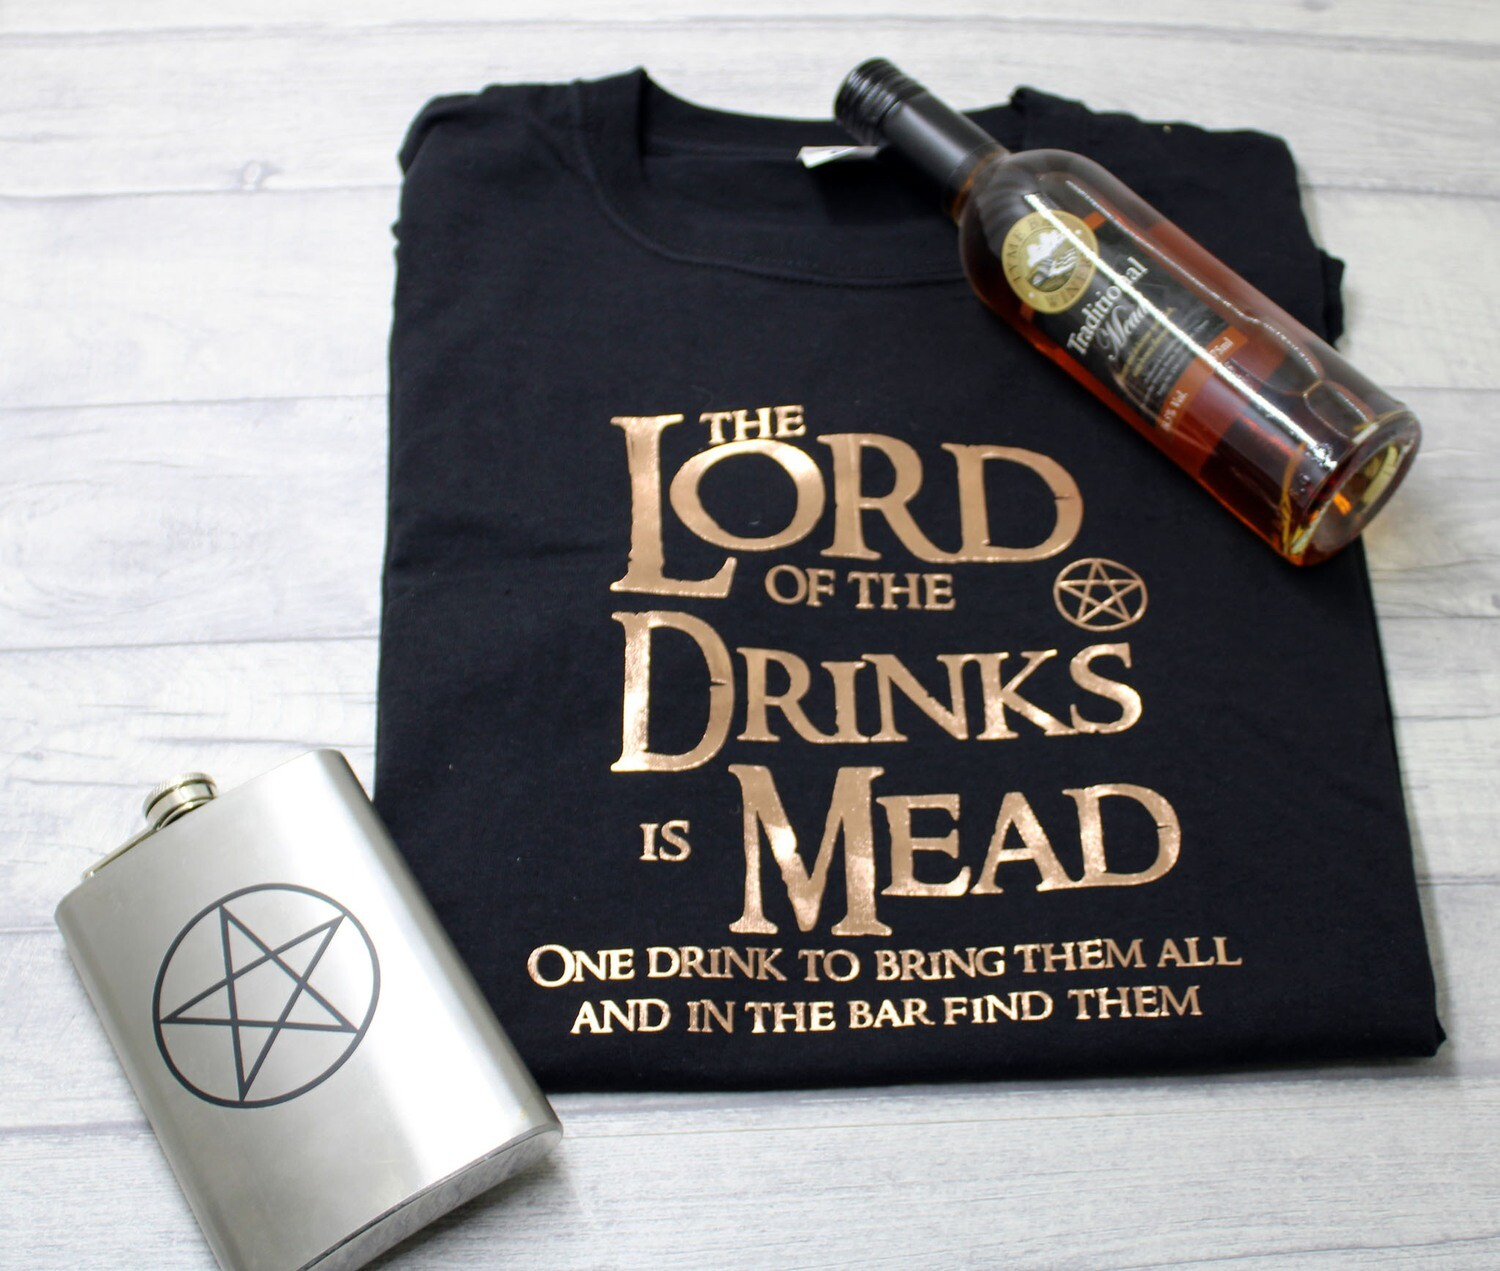 Lord of the Drinks is Mead Cotton T-Shirt